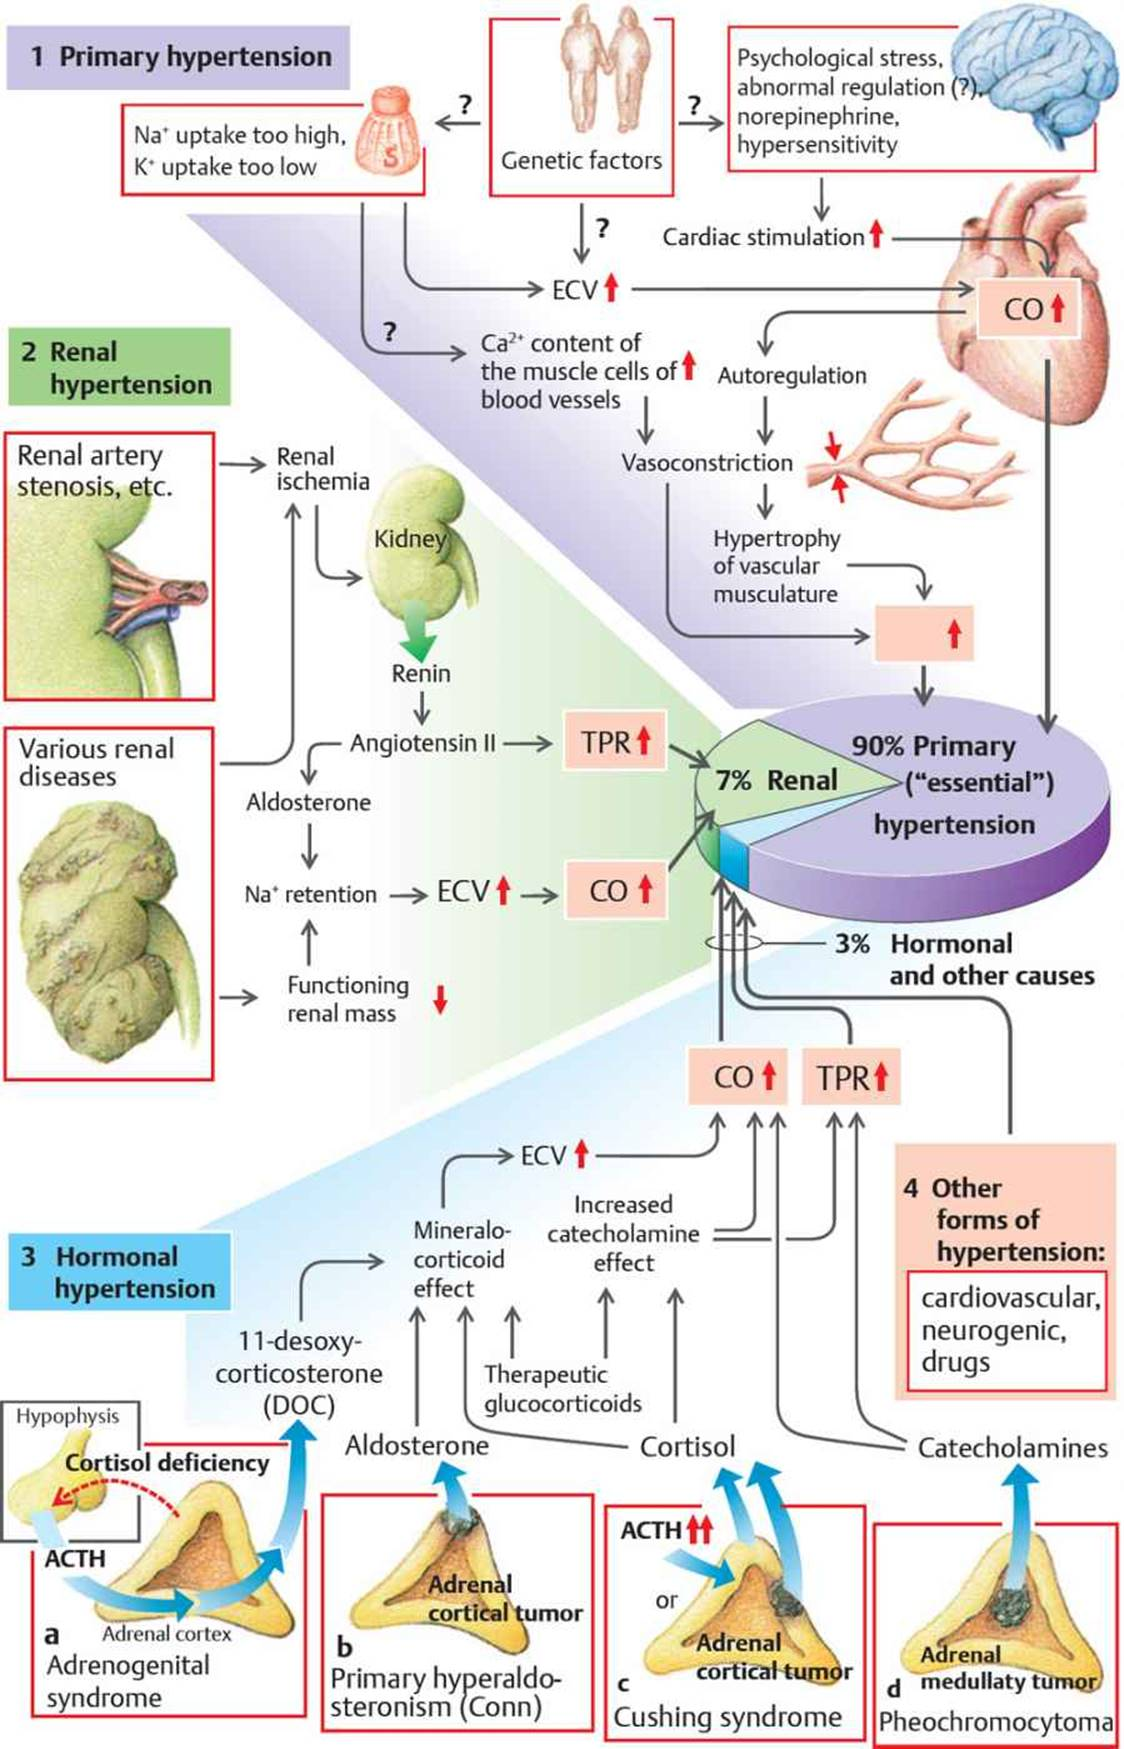 physiology and pharmacology of hypertension Historically, physiology and pharmacology have been closely allied it was through the discovery of whole organism physiology that the effects and mechanisms of drugs were studied for example, the physiological measurement of blood pressure allowed the development of antihypertensive drugs this close alliance is.